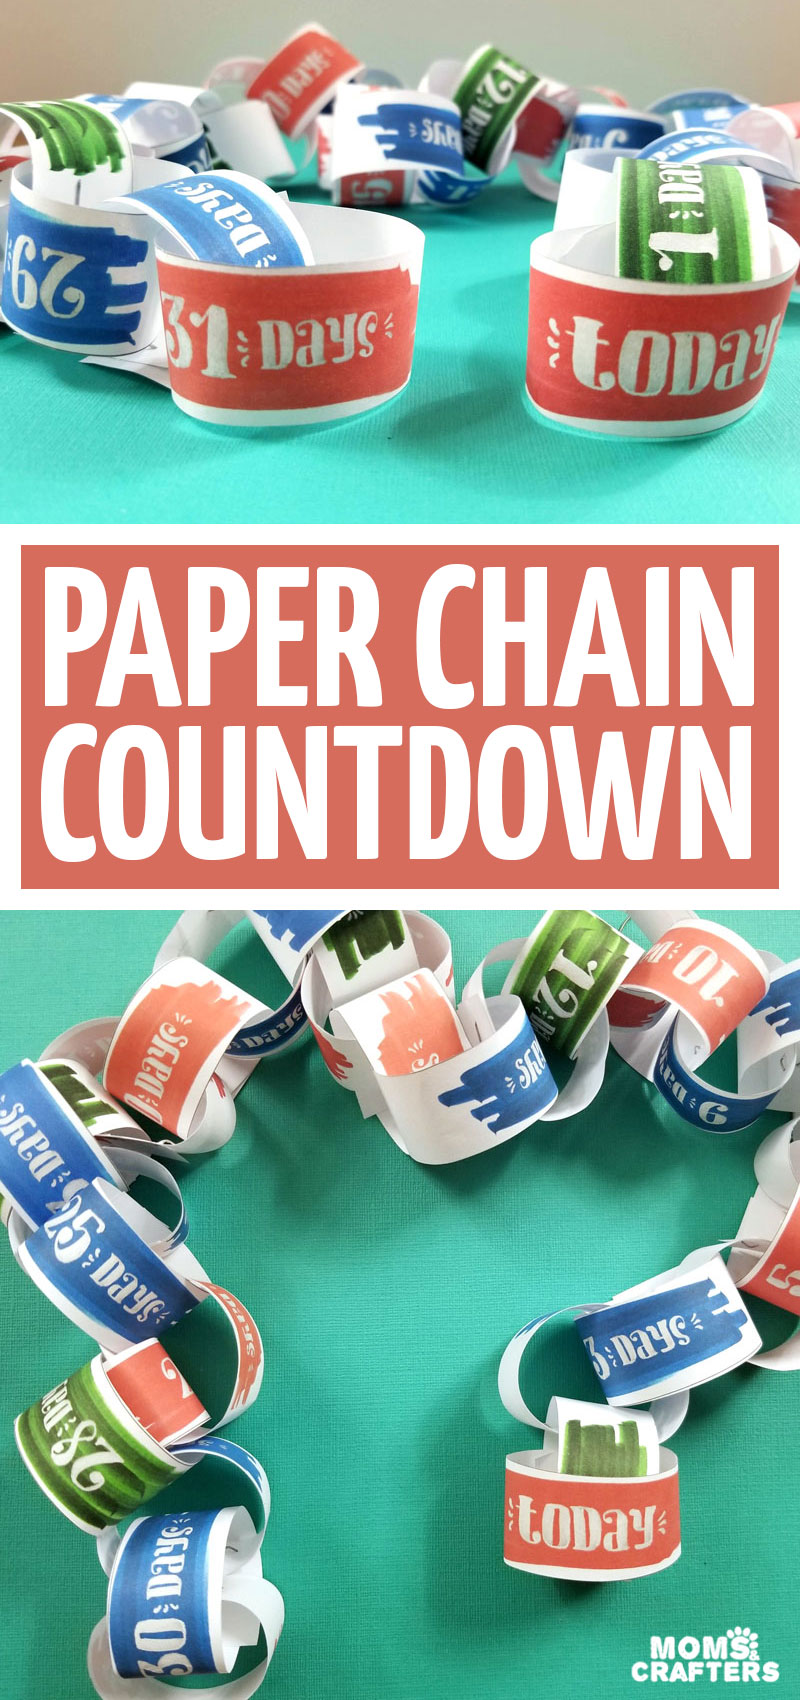 Click to download a free printable vacation countdown calendar! This fun paper chain countdown is perfect for travelling with kids and counting down the days!